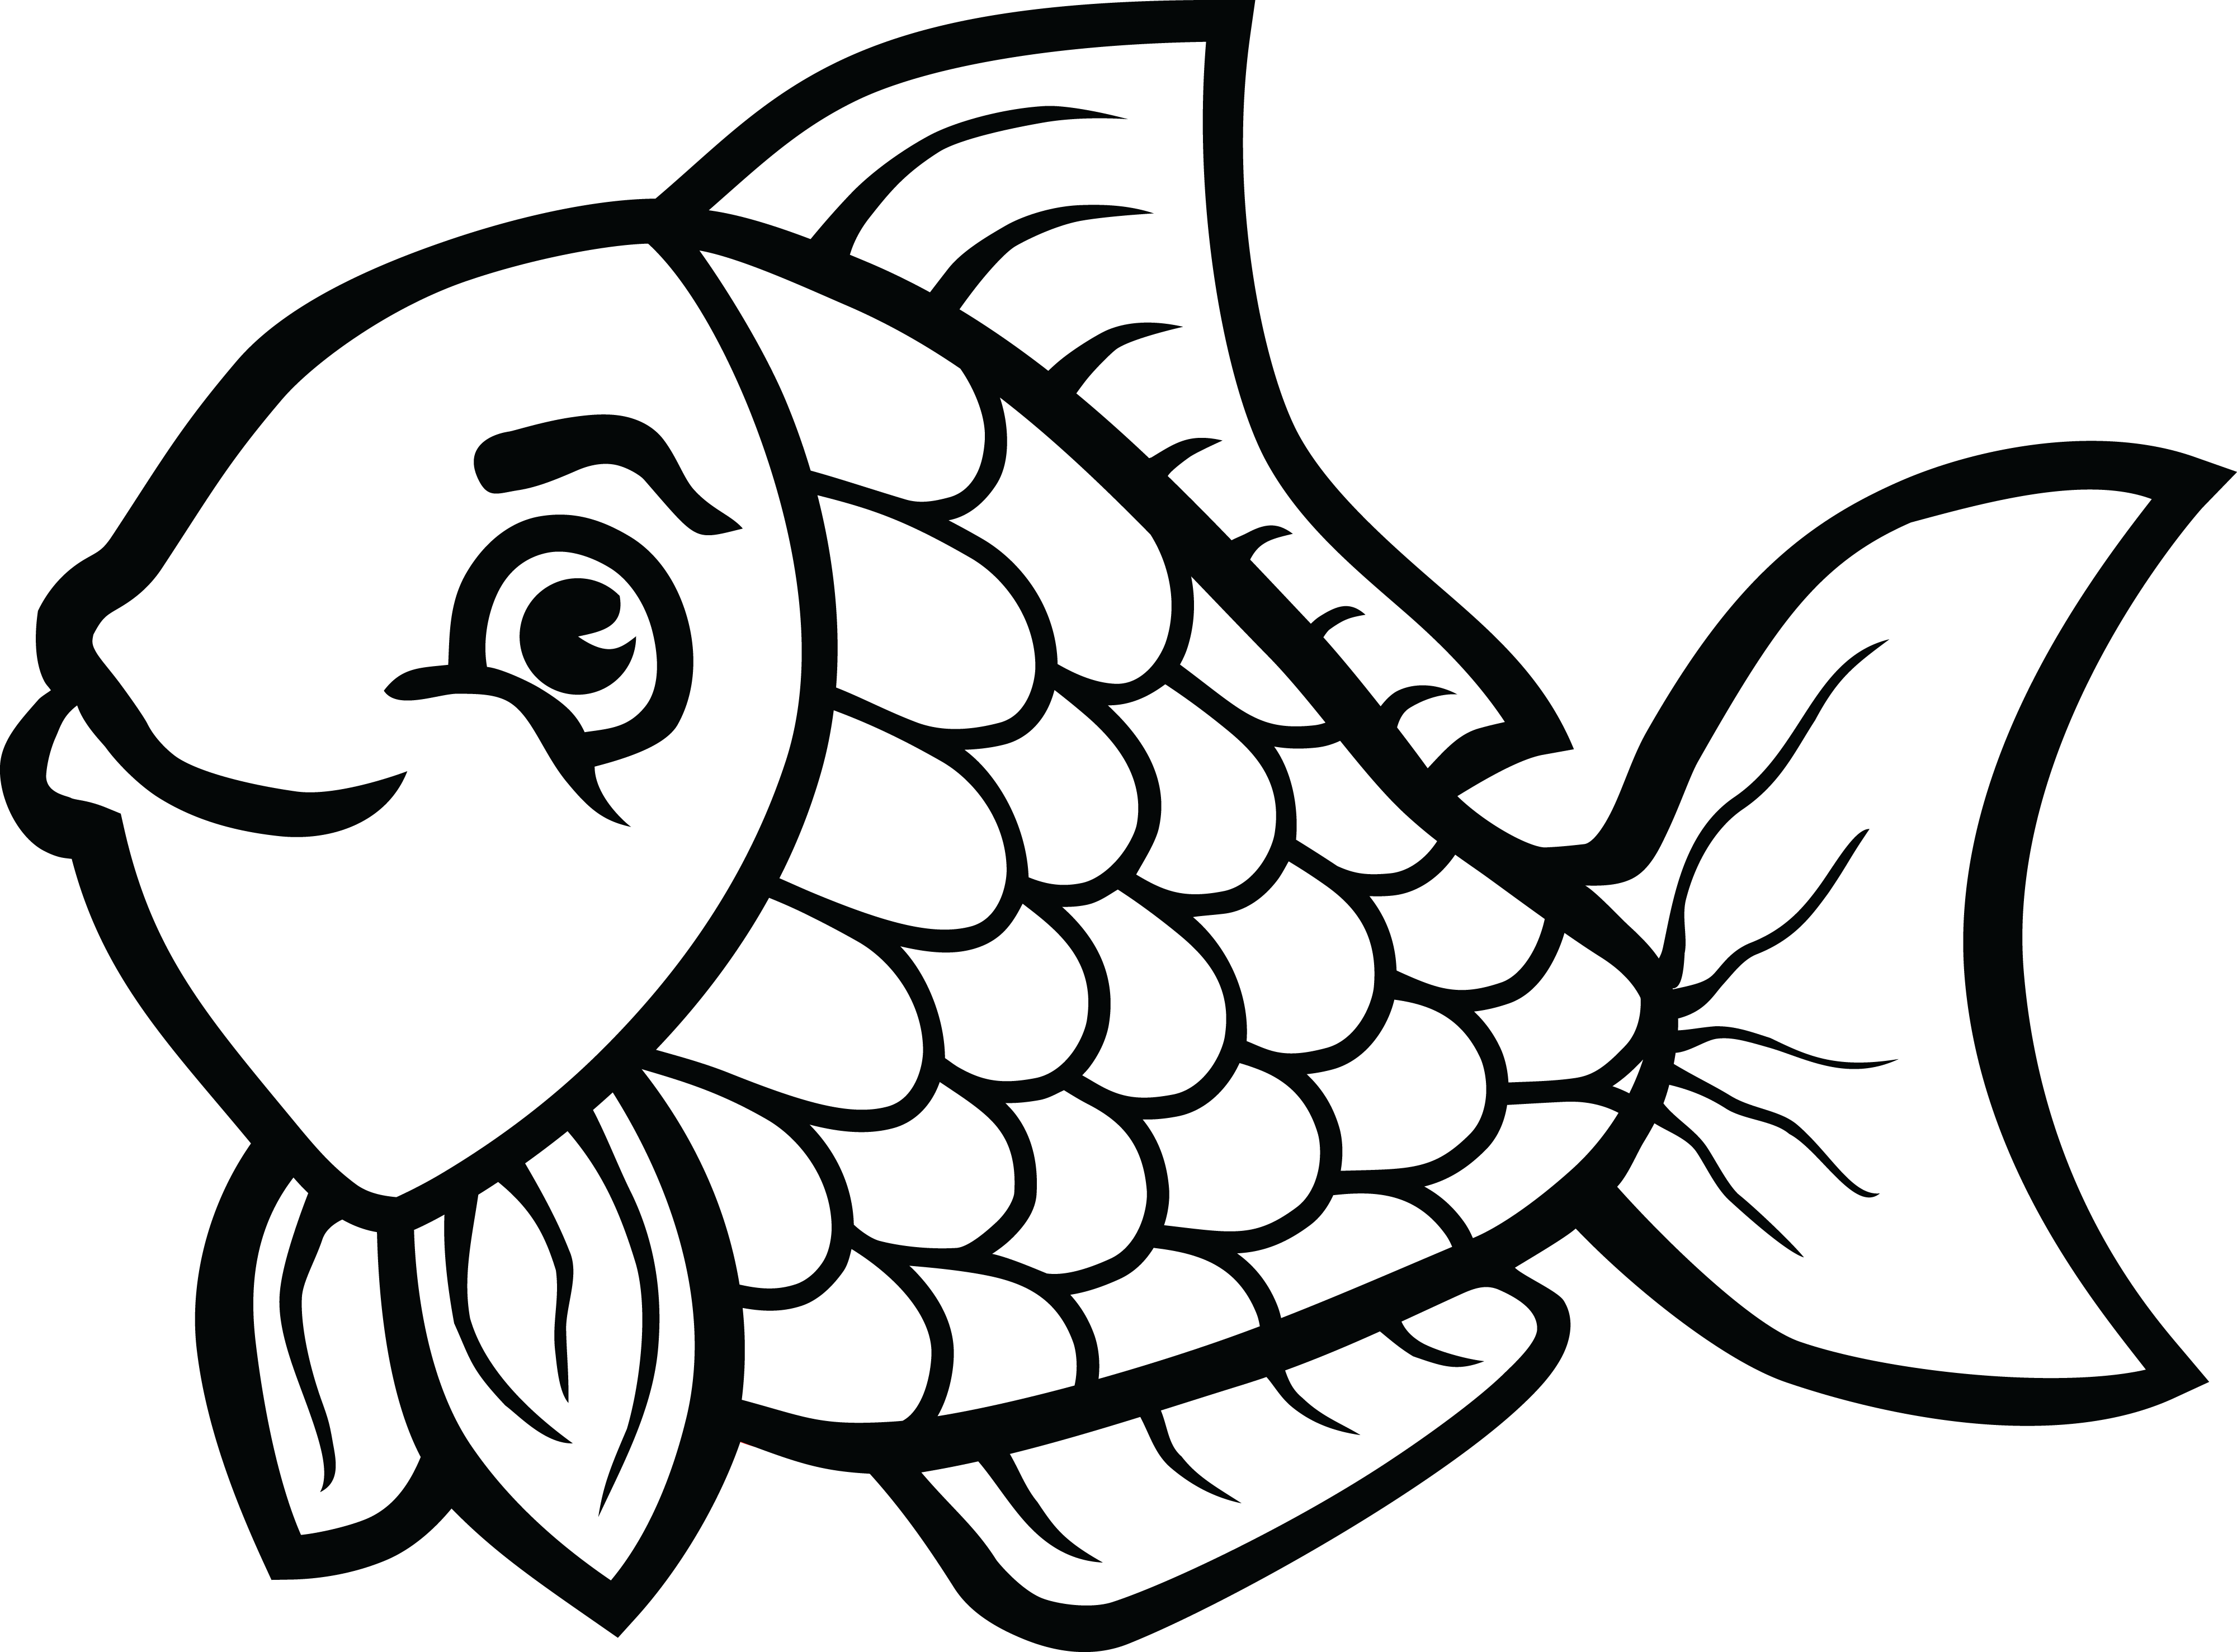 images of fish for colouring butterfly fish coloring pages at getcoloringscom free fish images of for colouring